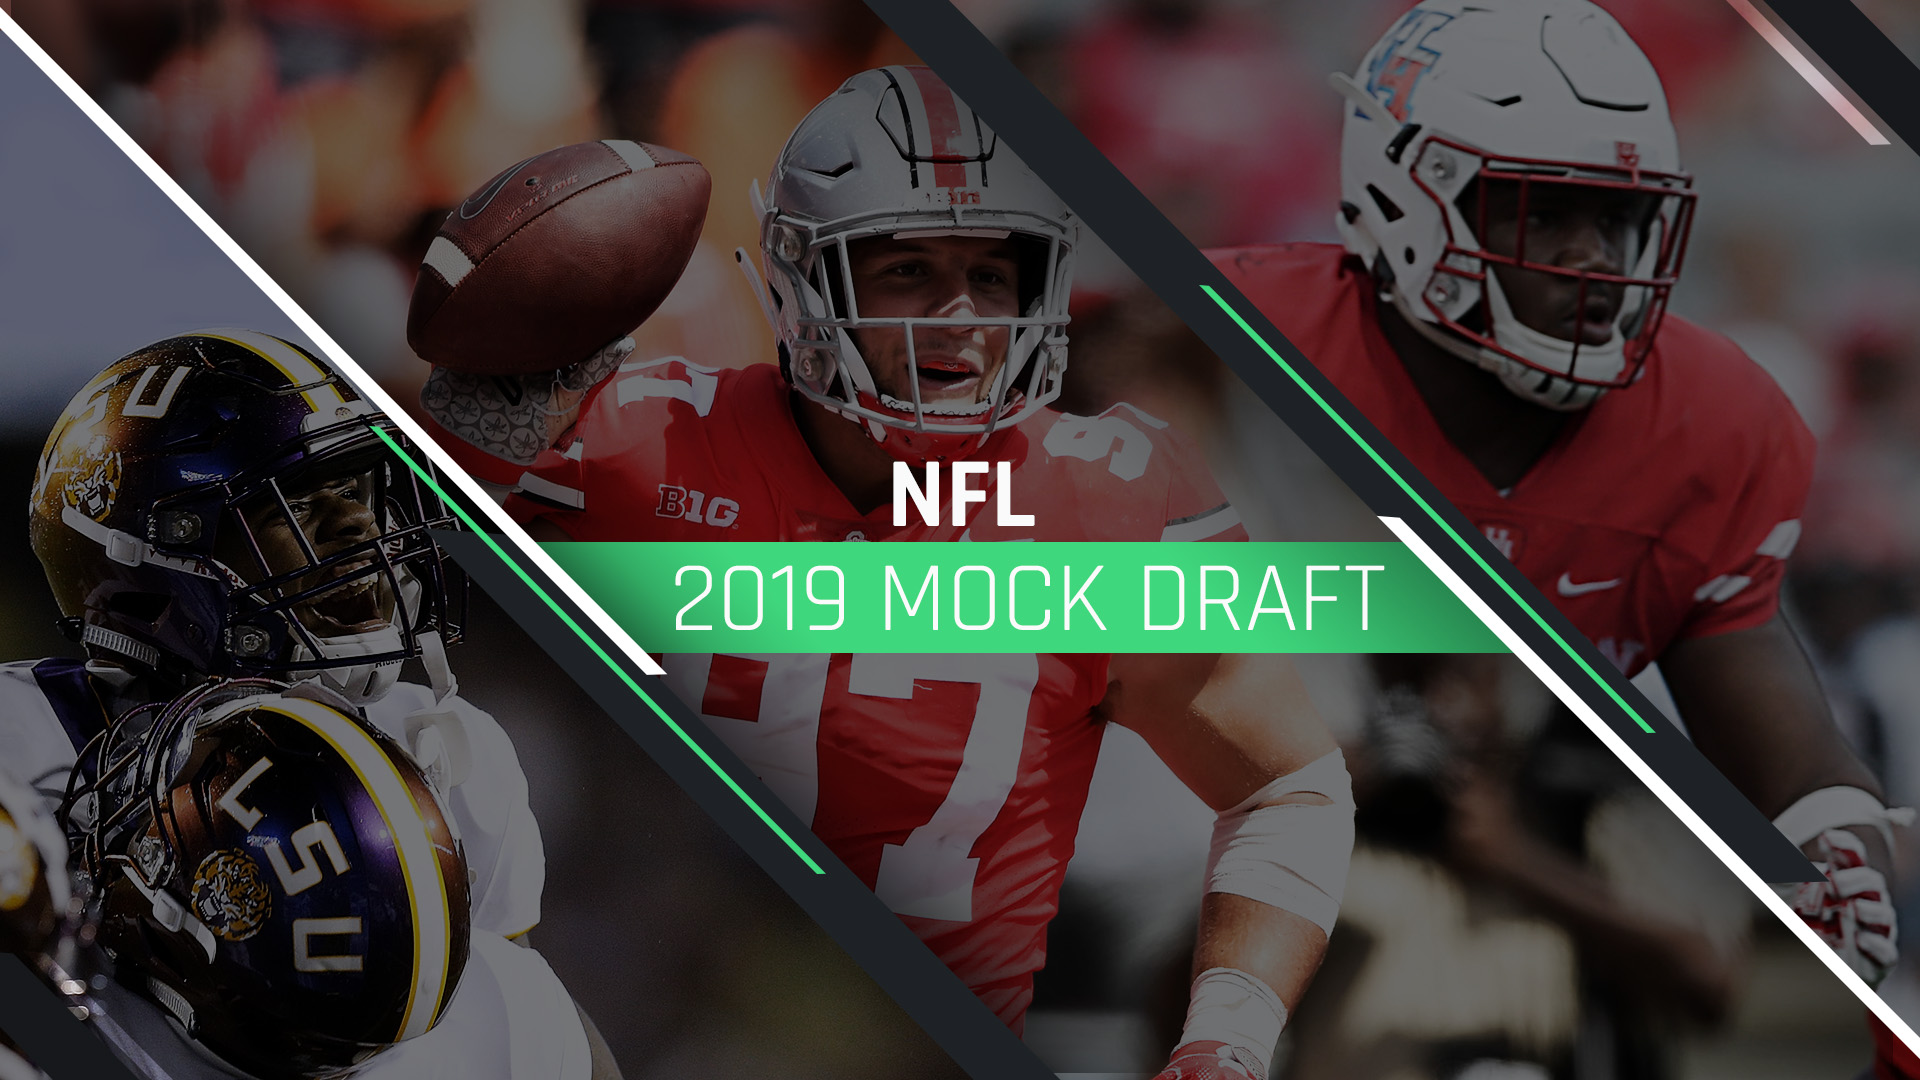 NFL mock draft 2019: Cardinals, 49ers go for D; Broncos, Giants, Dolphins go QB